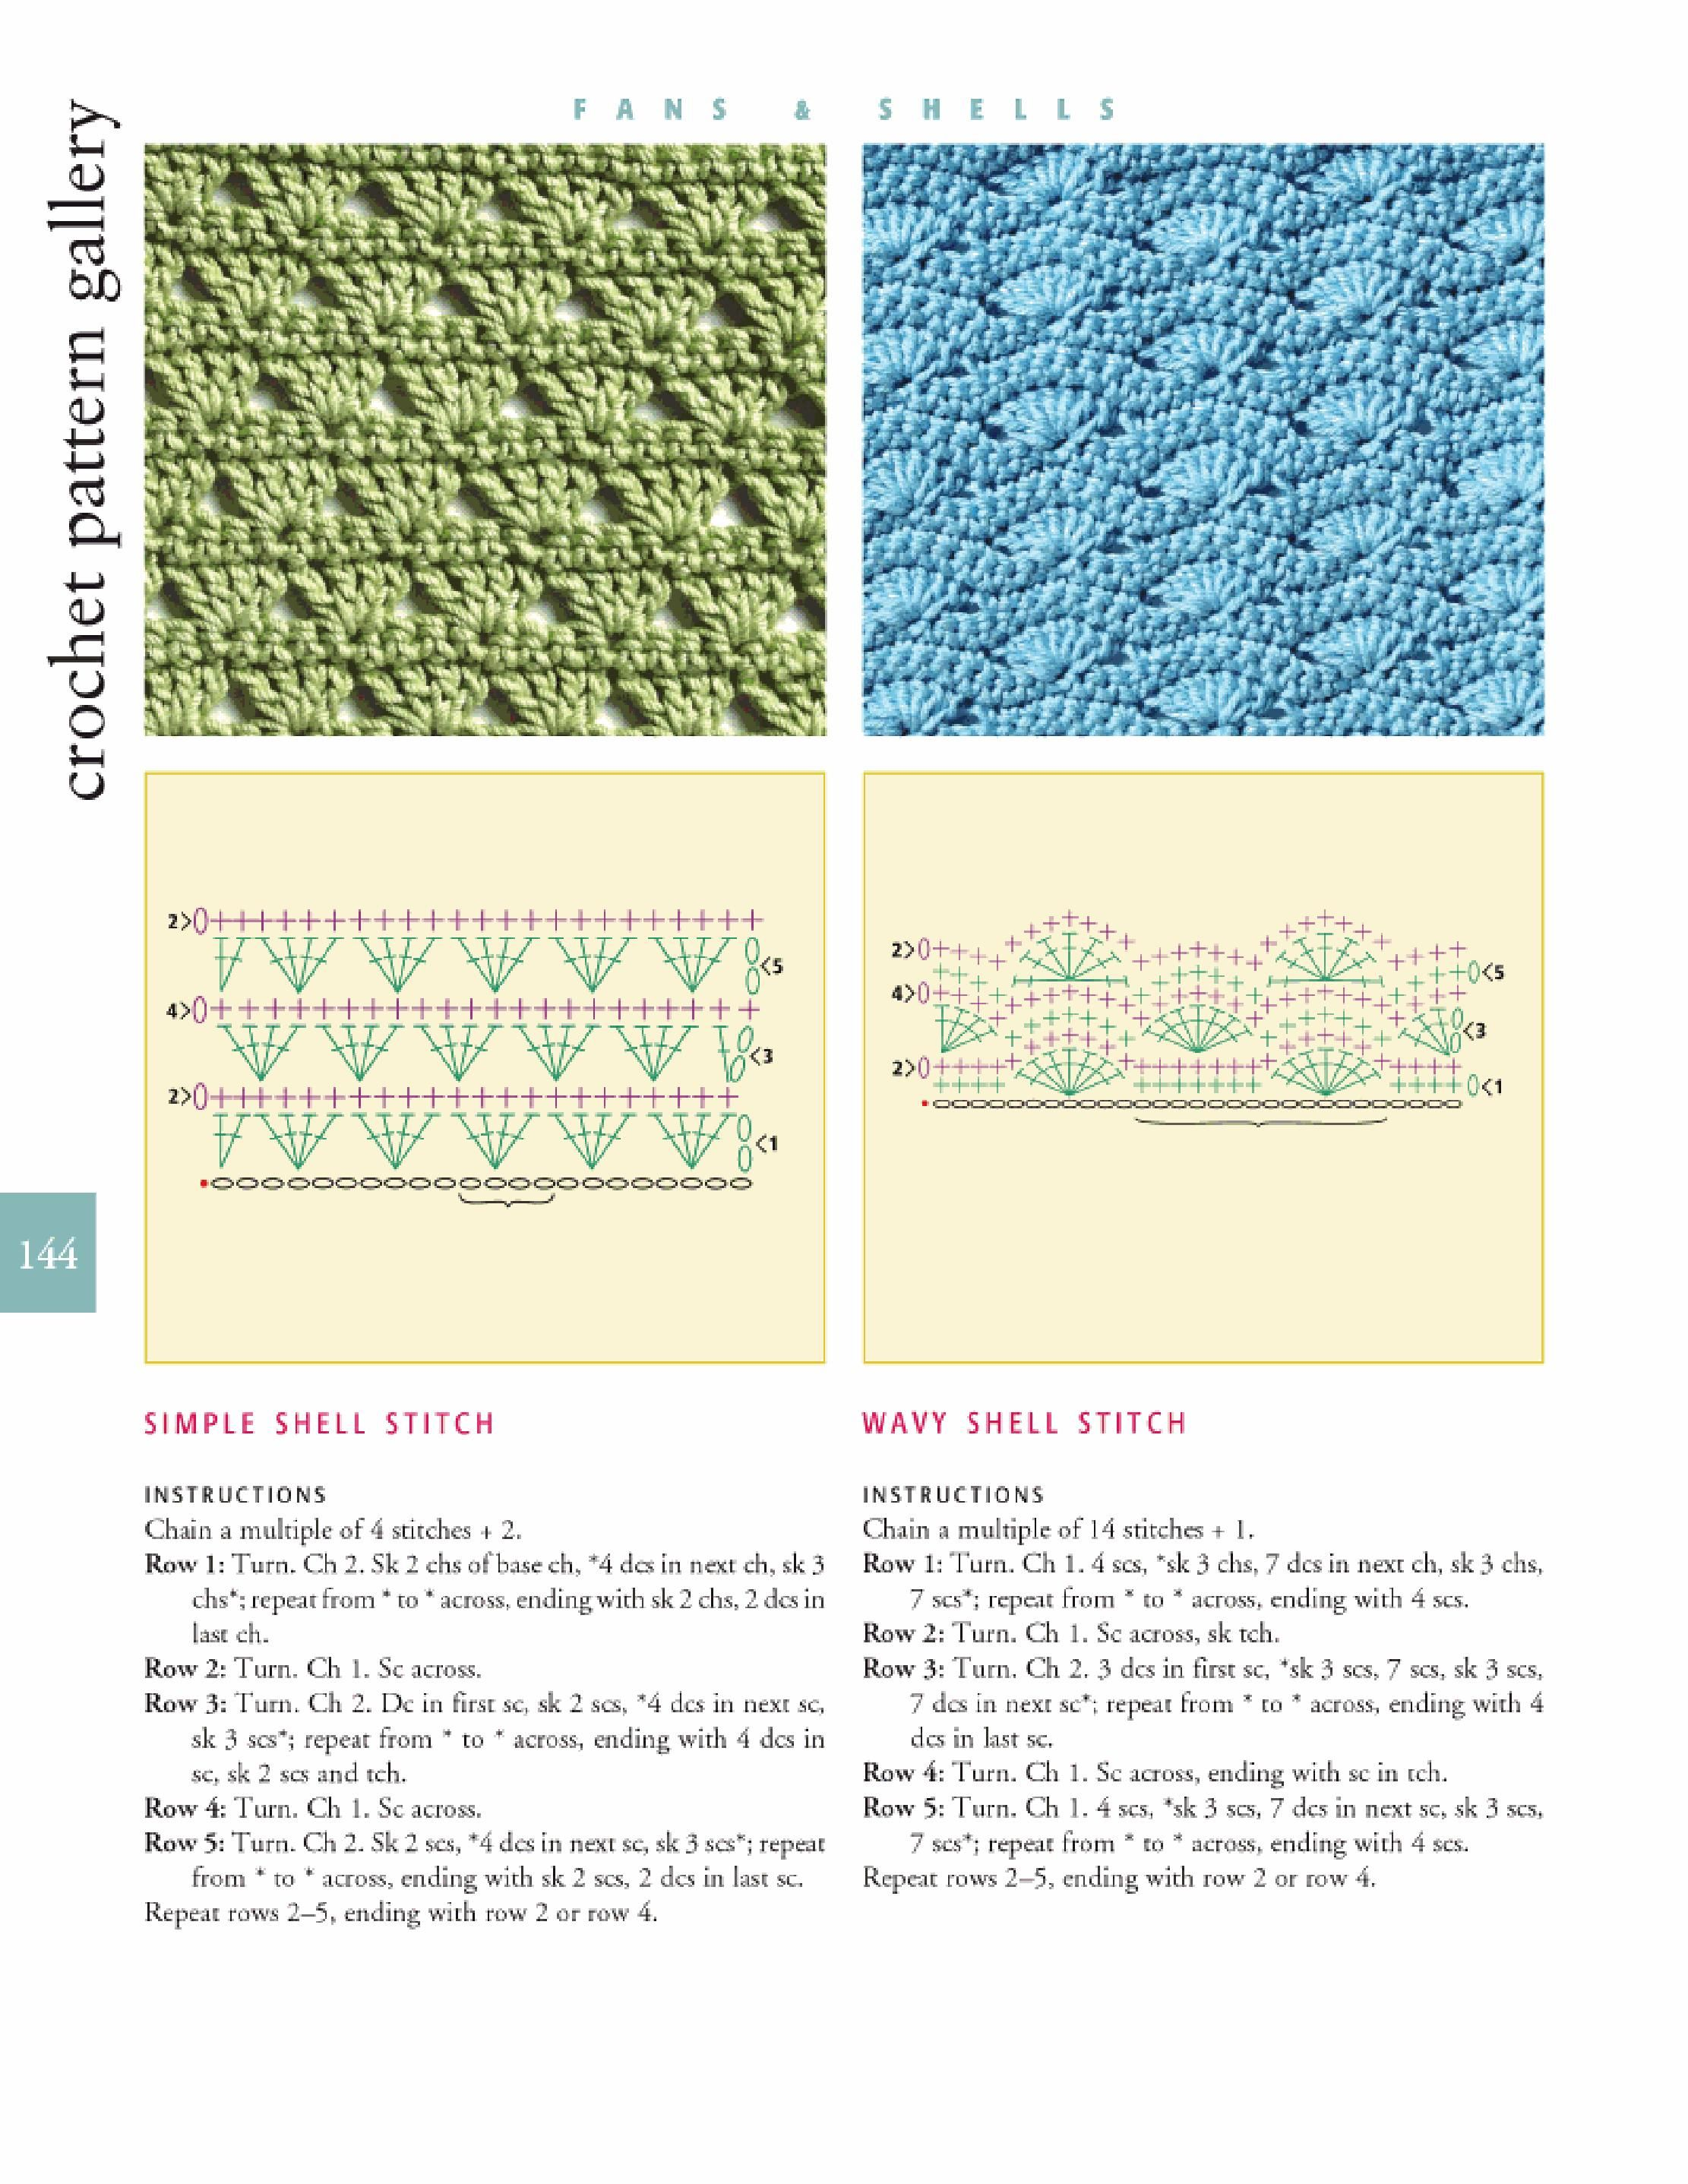 Wavy shell stitch! Just the kind of instructions I work beat with ...